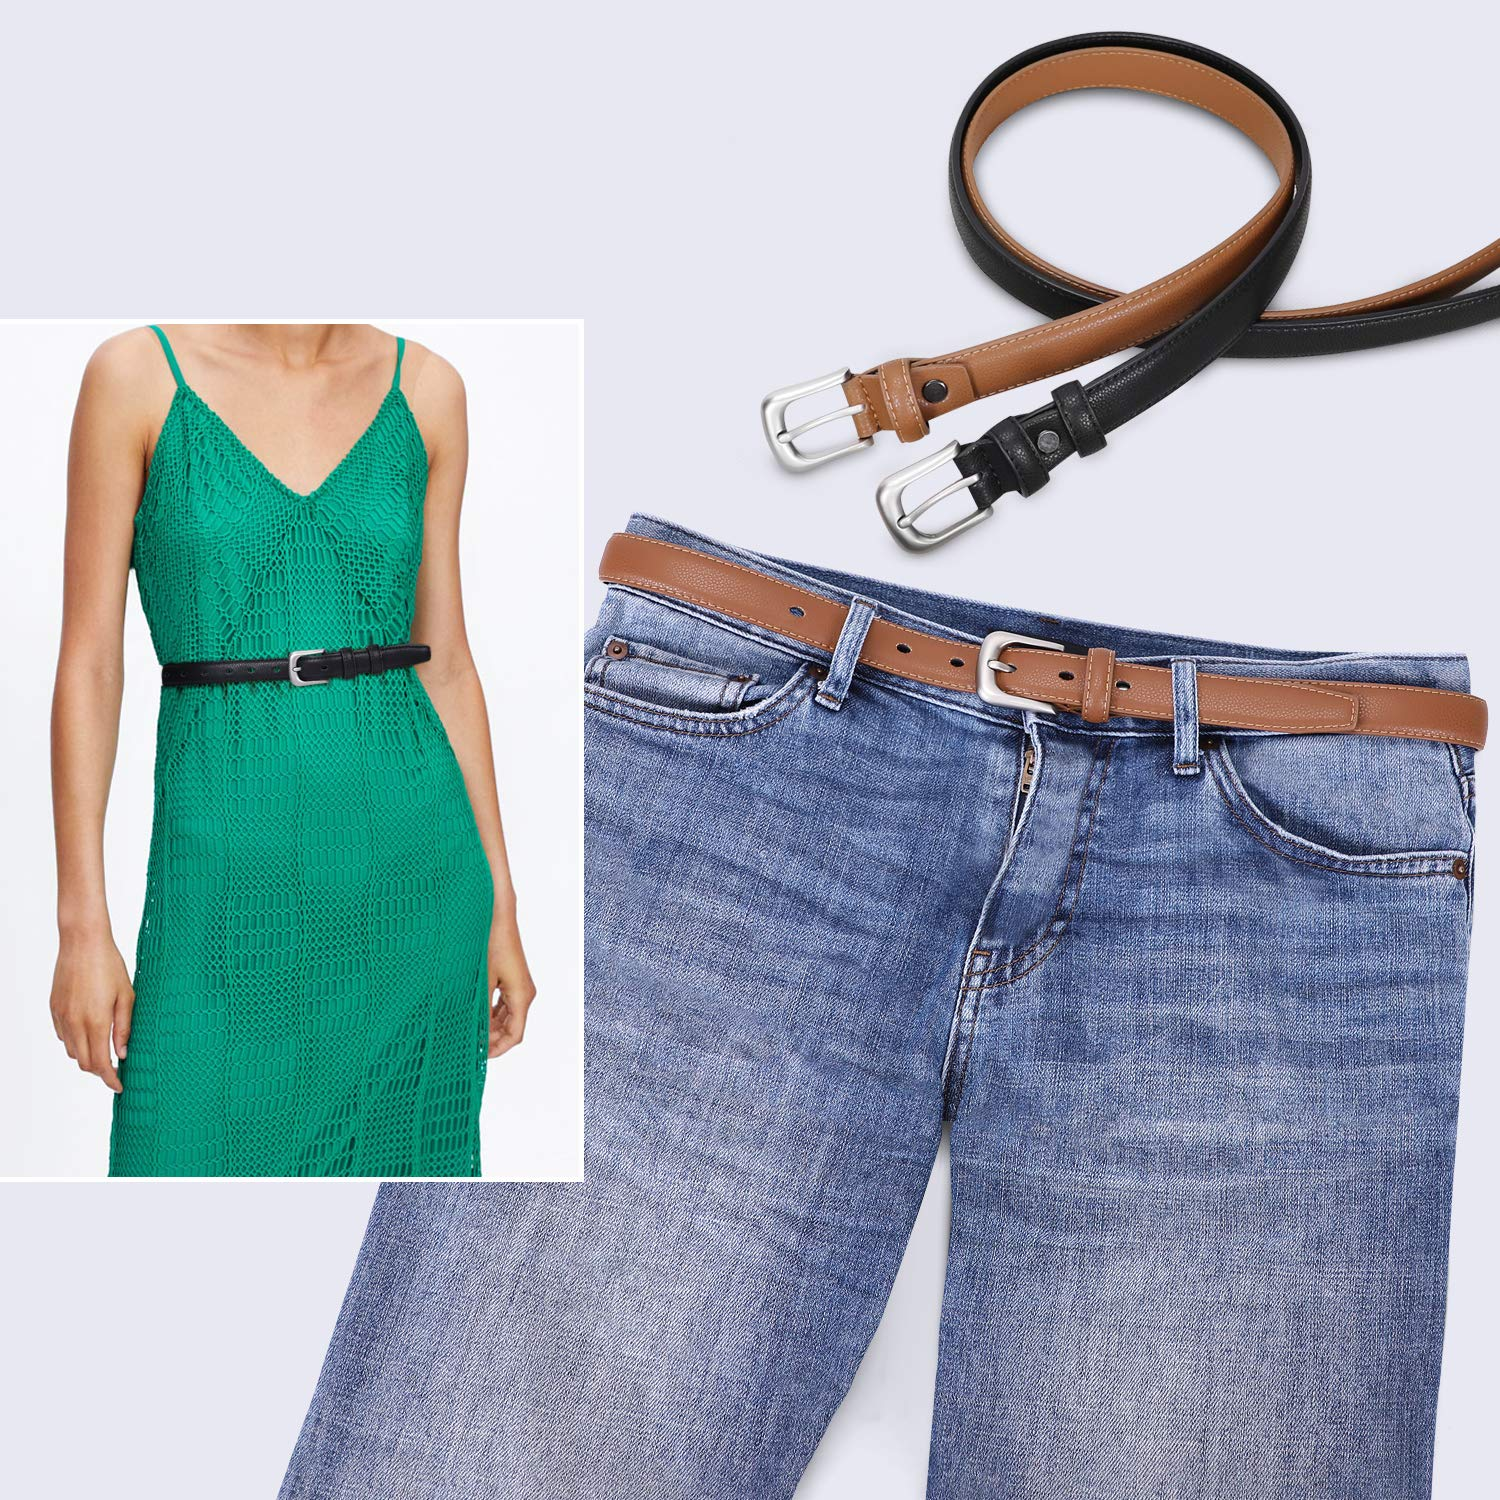 Women Skinny Leather Belt Waist Jeans Pin Buckle Belt for Pants Dresses by Whippy